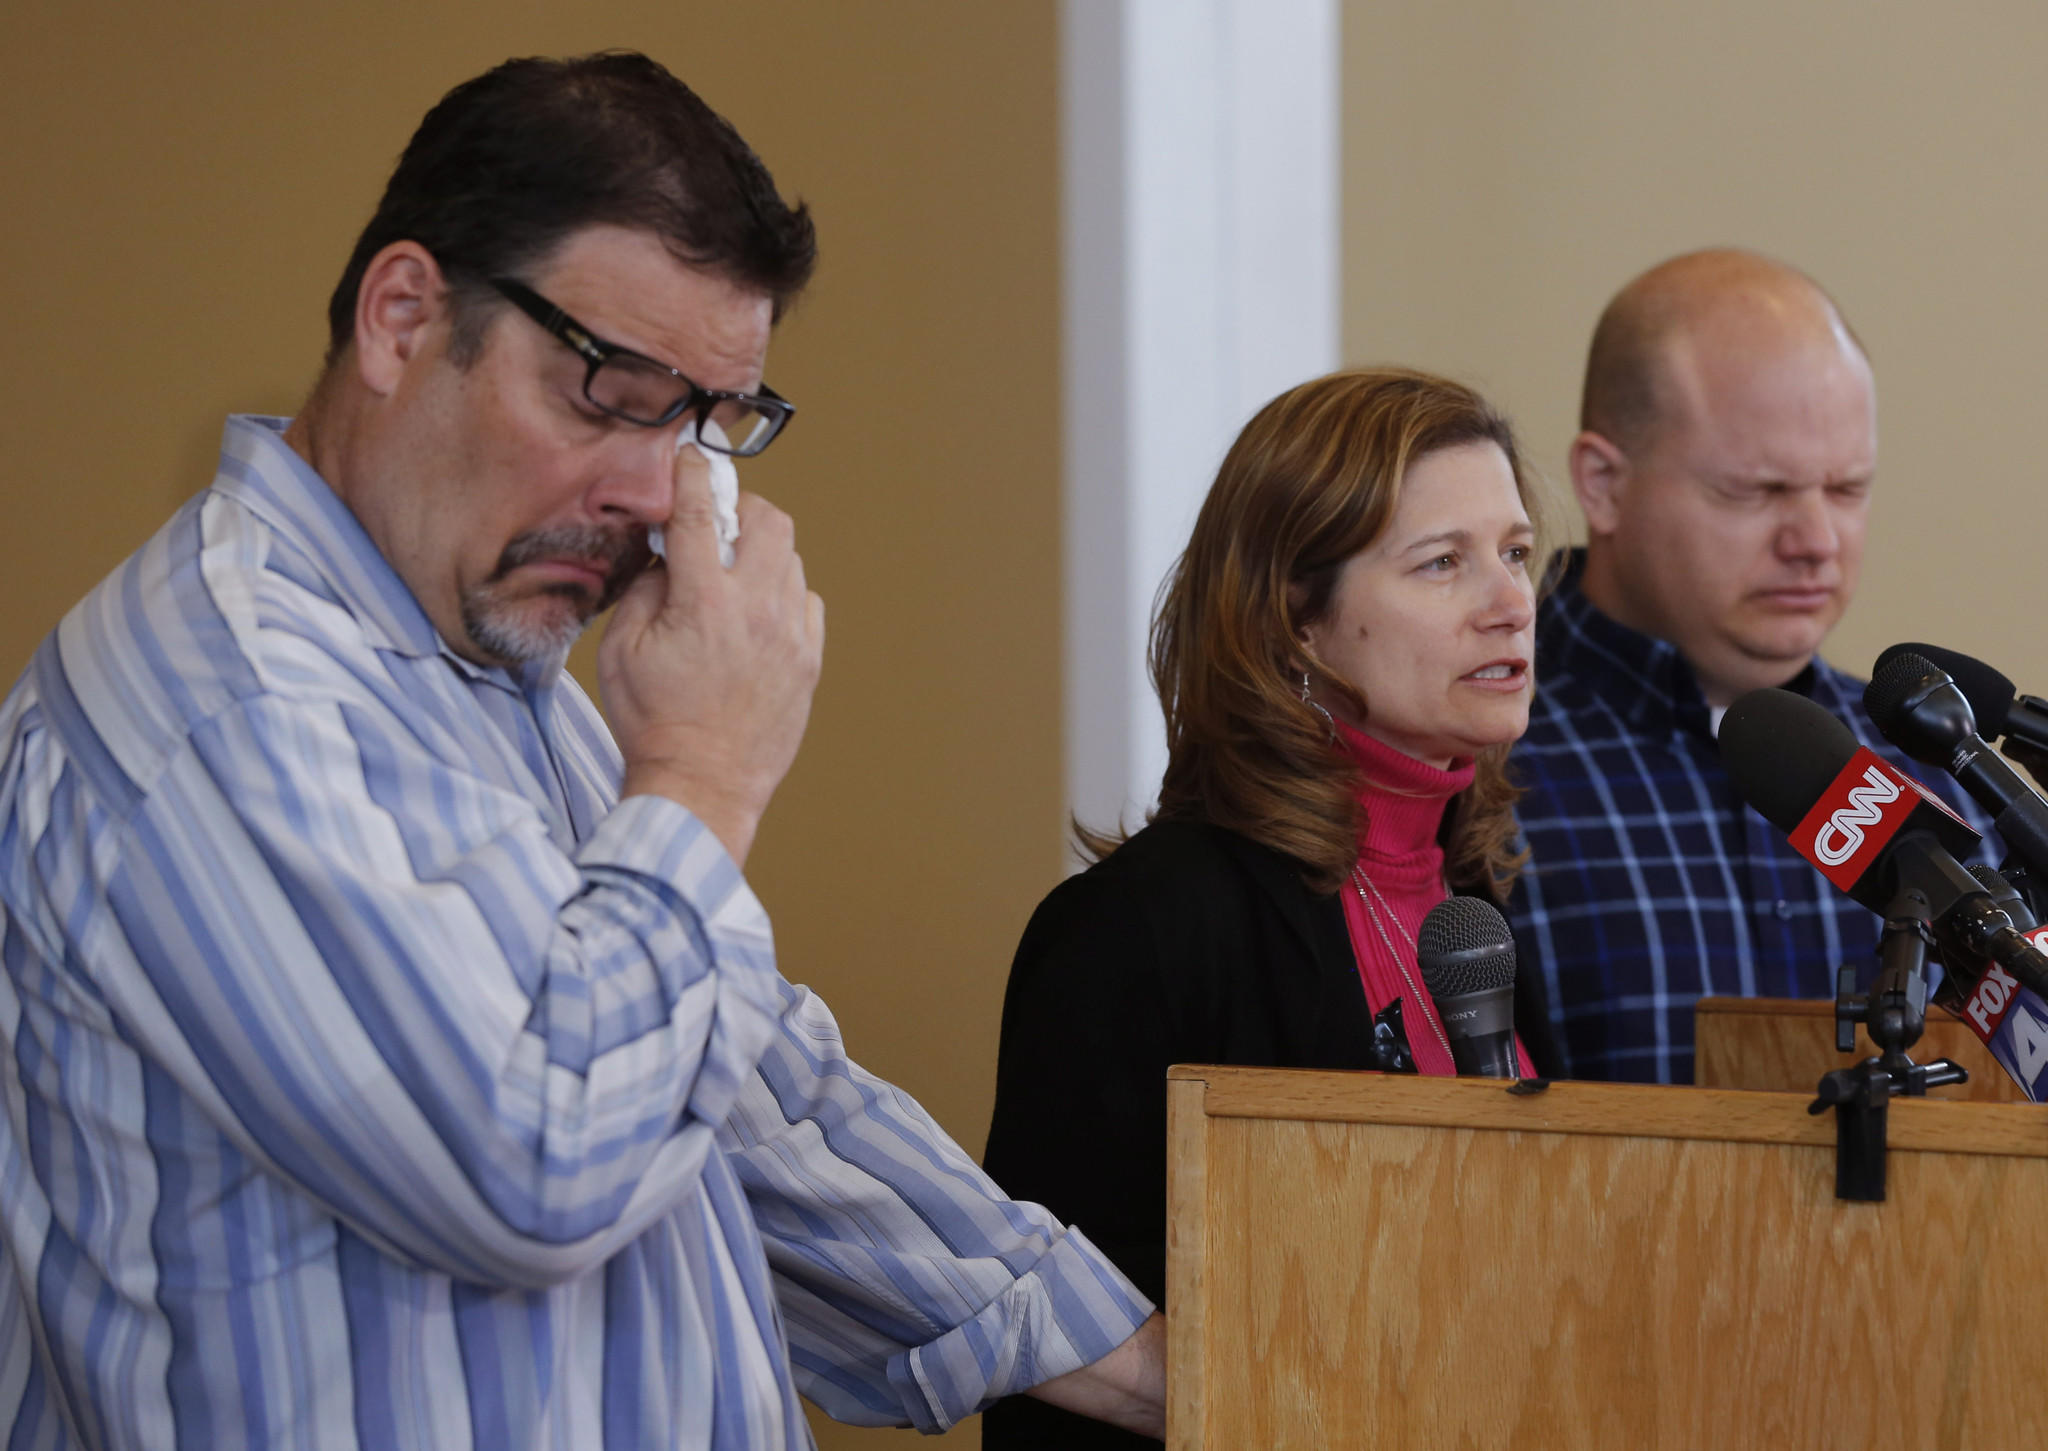 Will Corporon, left, and Tony Corporon, right, fight emotions while Mindy Losen talks about her son and father during a news conference at their church in Leawood, Kan.